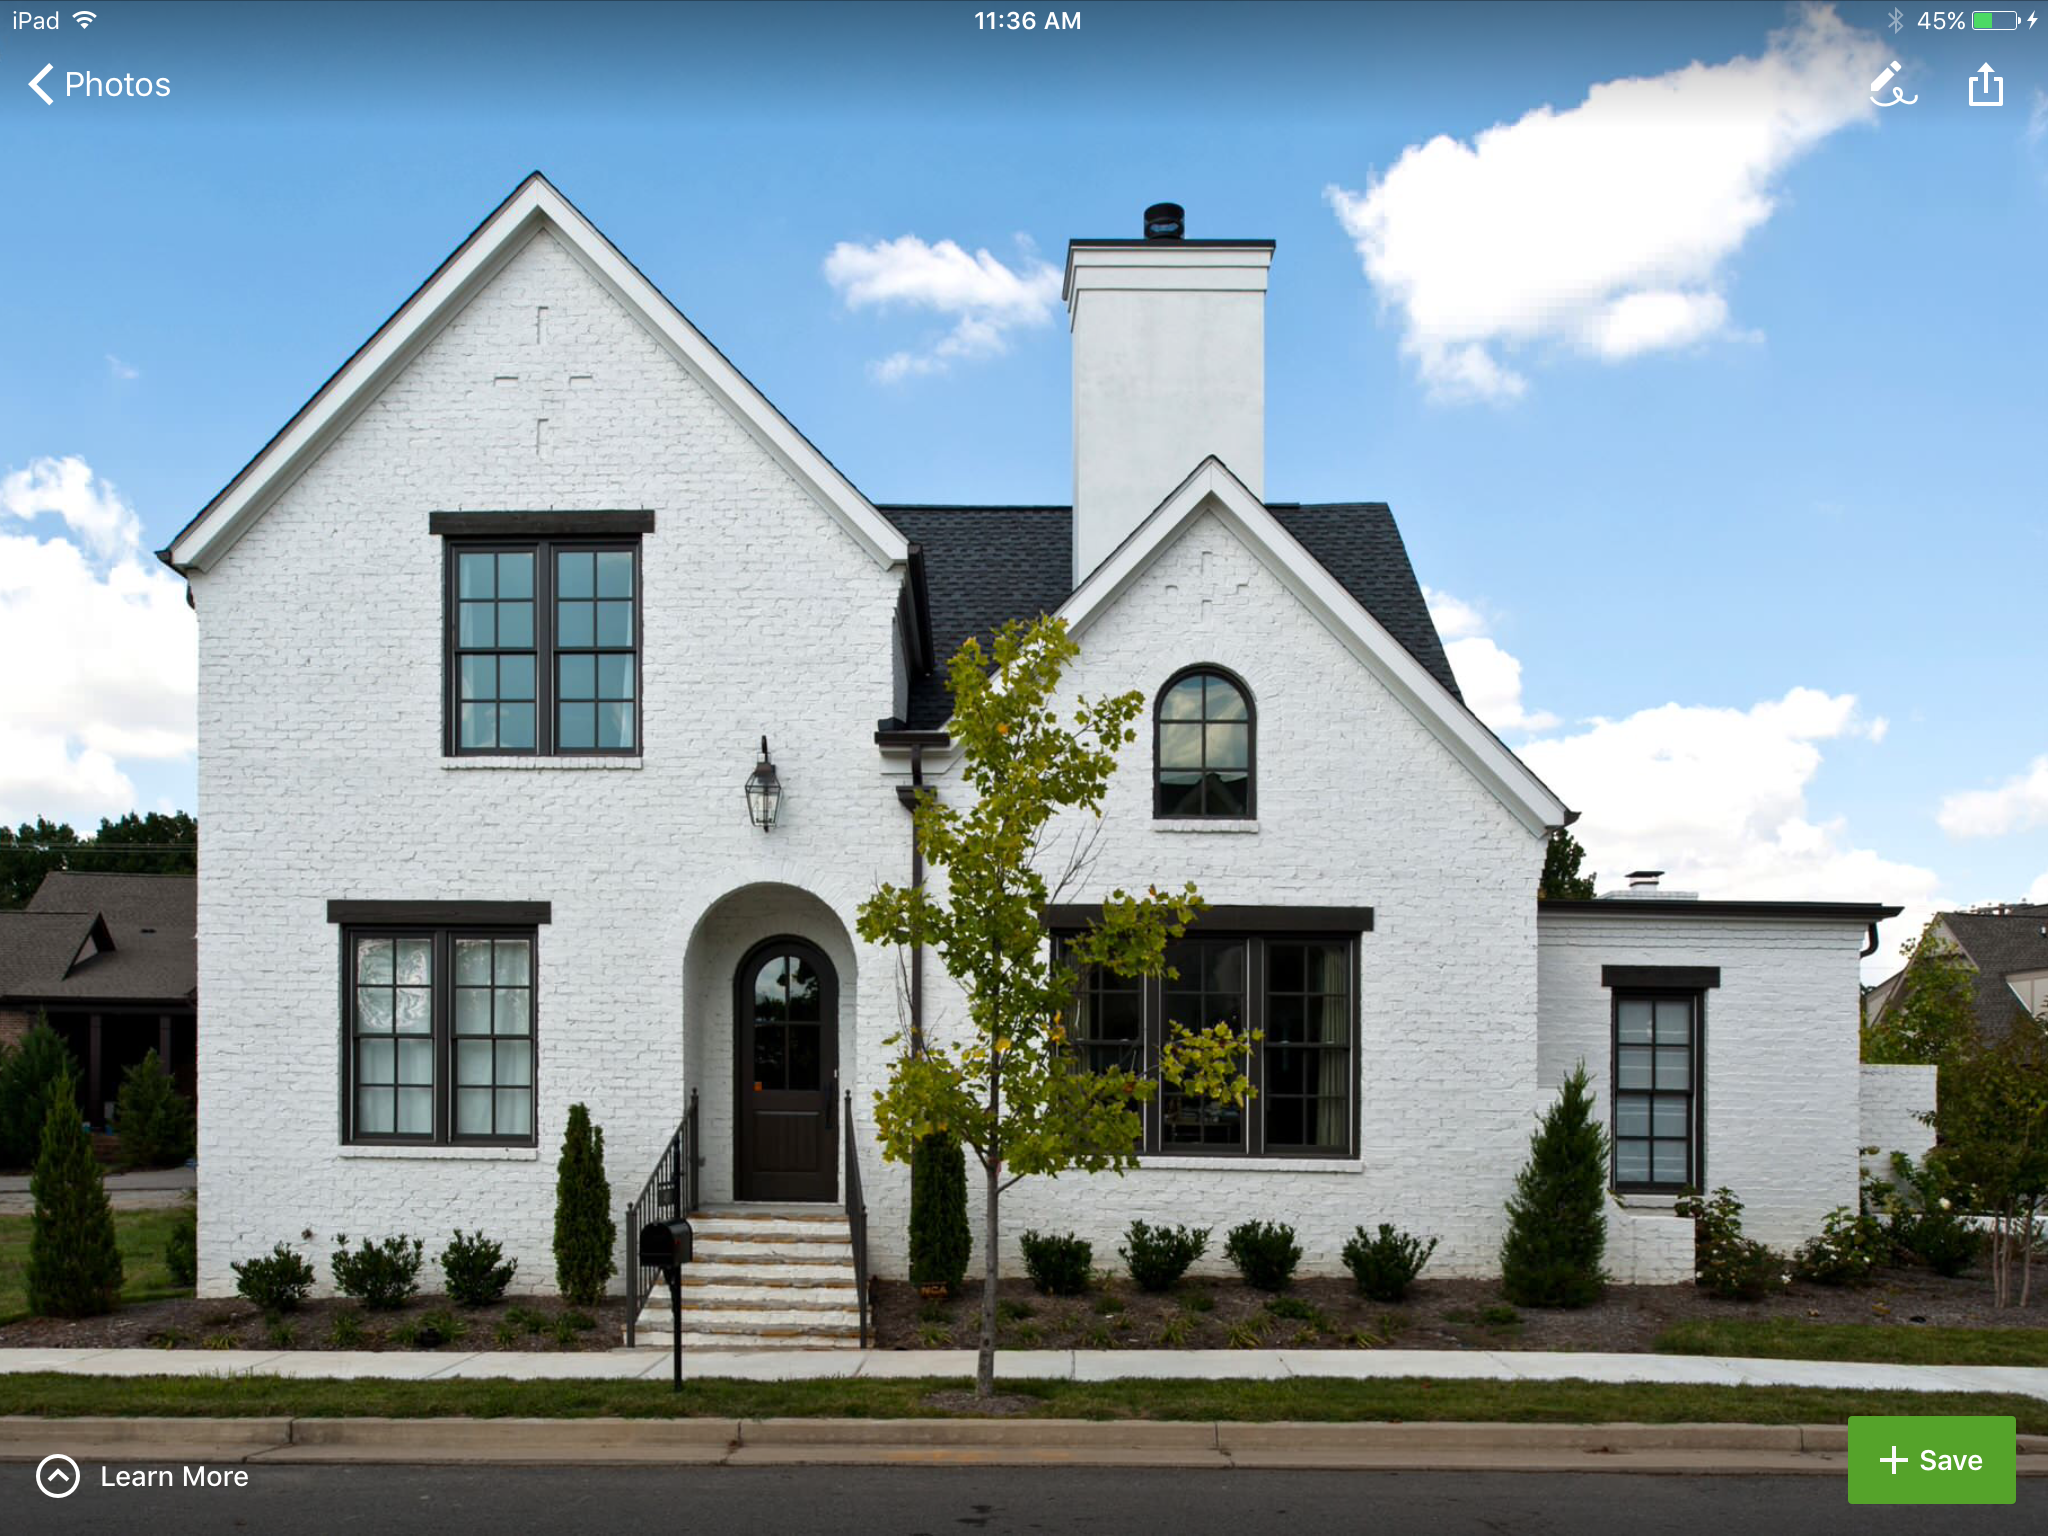 Dark Windows White Exterior Houses White Brick Houses Painted Brick House